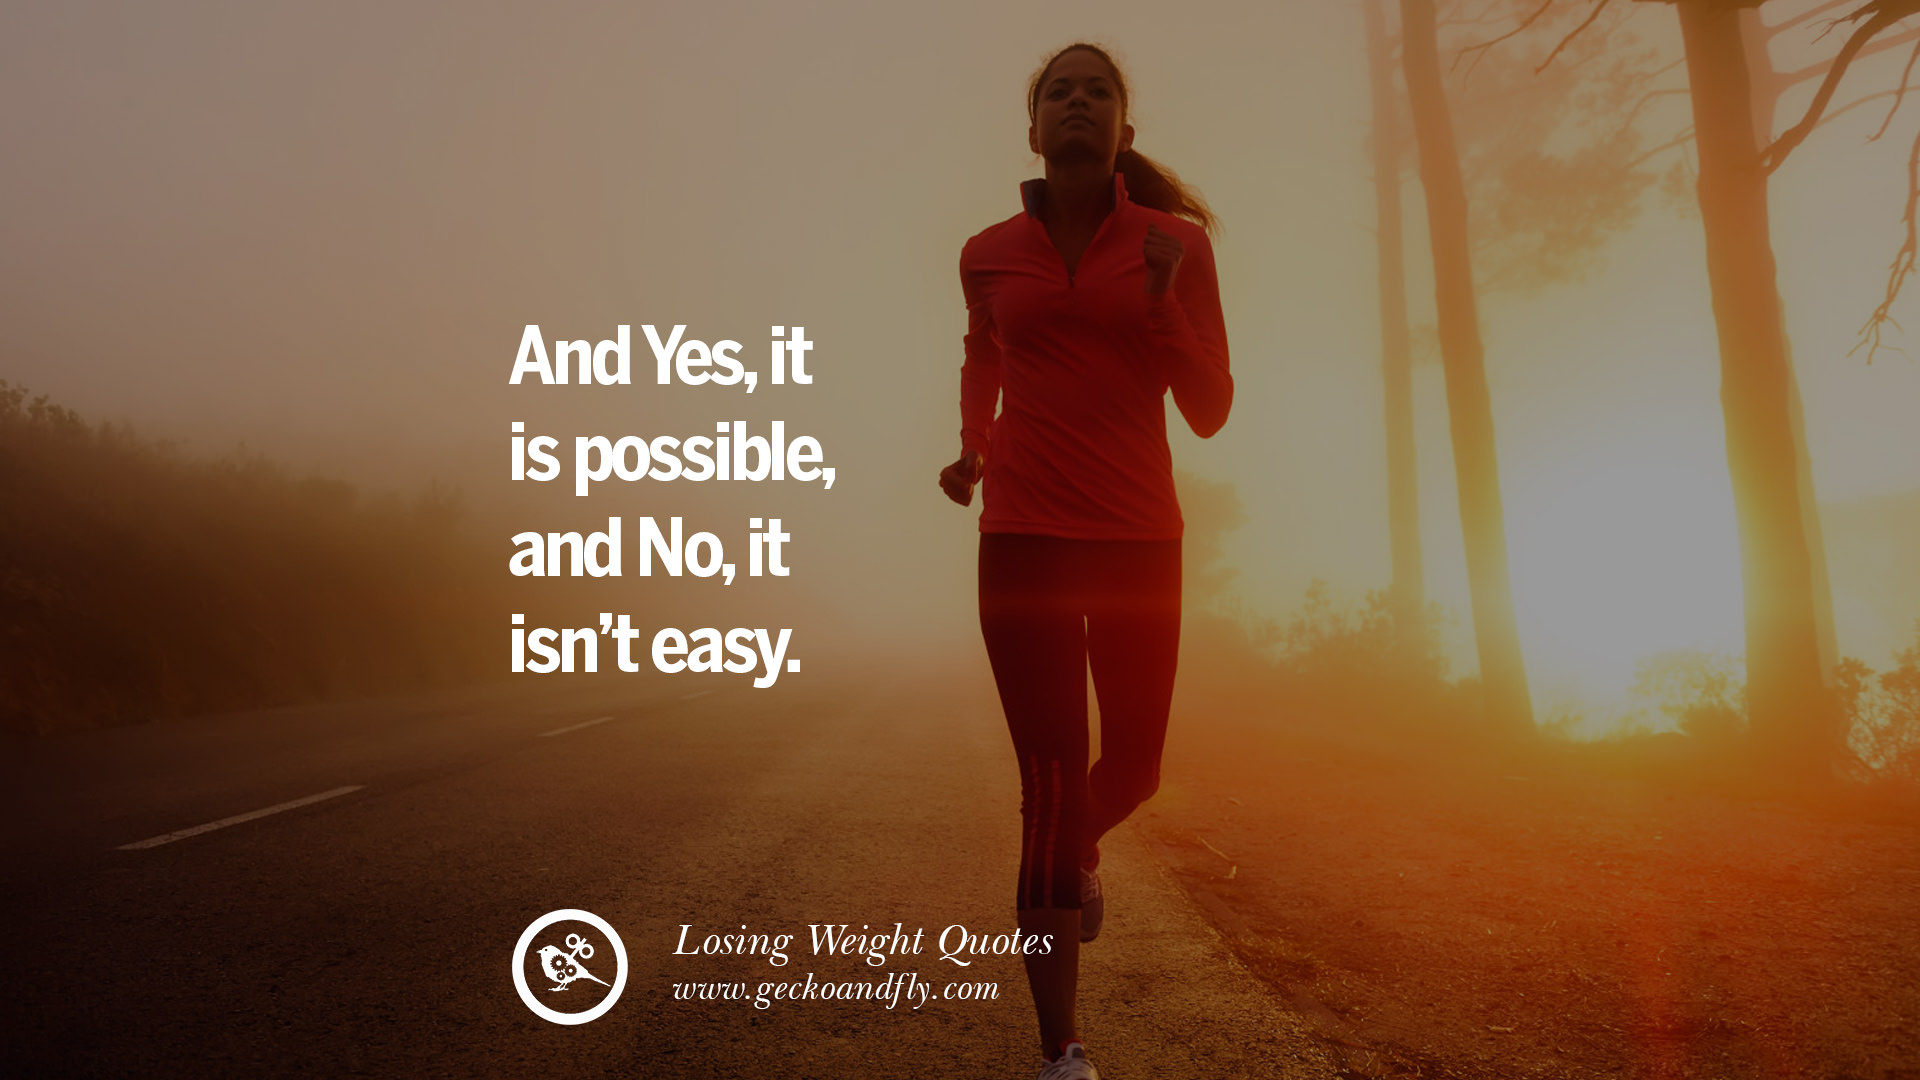 50 Motivating Quotes On Losing Weight On Diet And Living Healthy